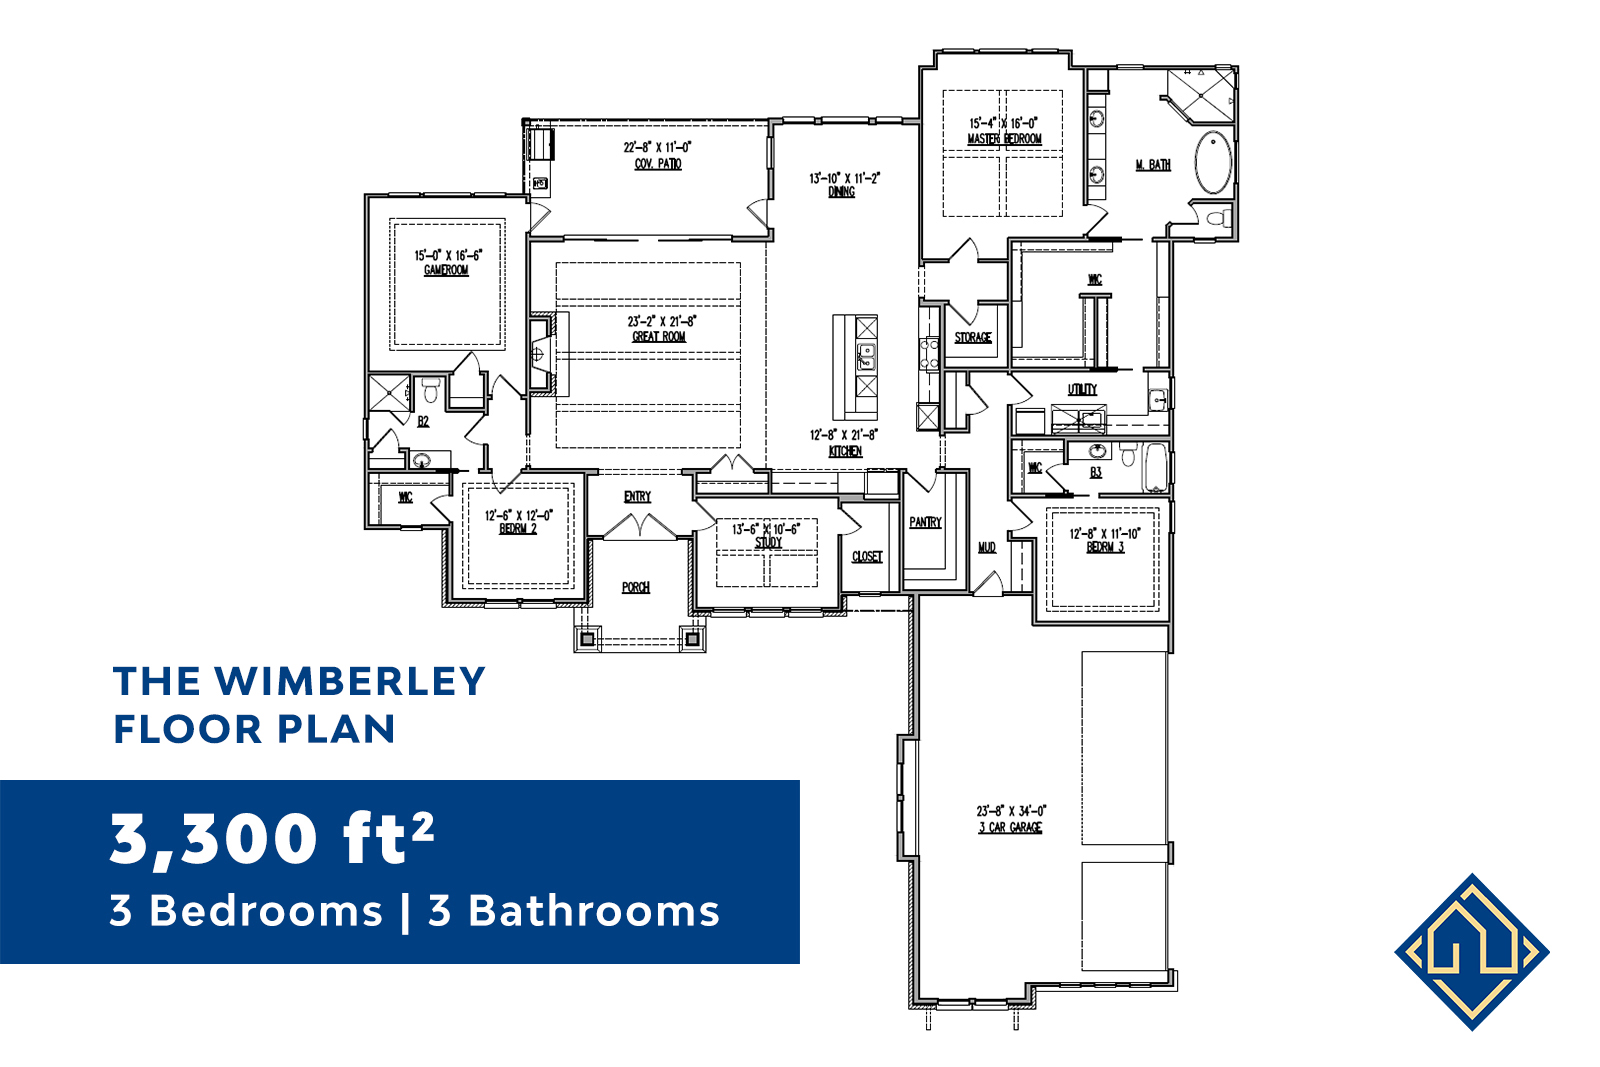 3 Bedroom 3 Bathroom Floor Plan with dimensions